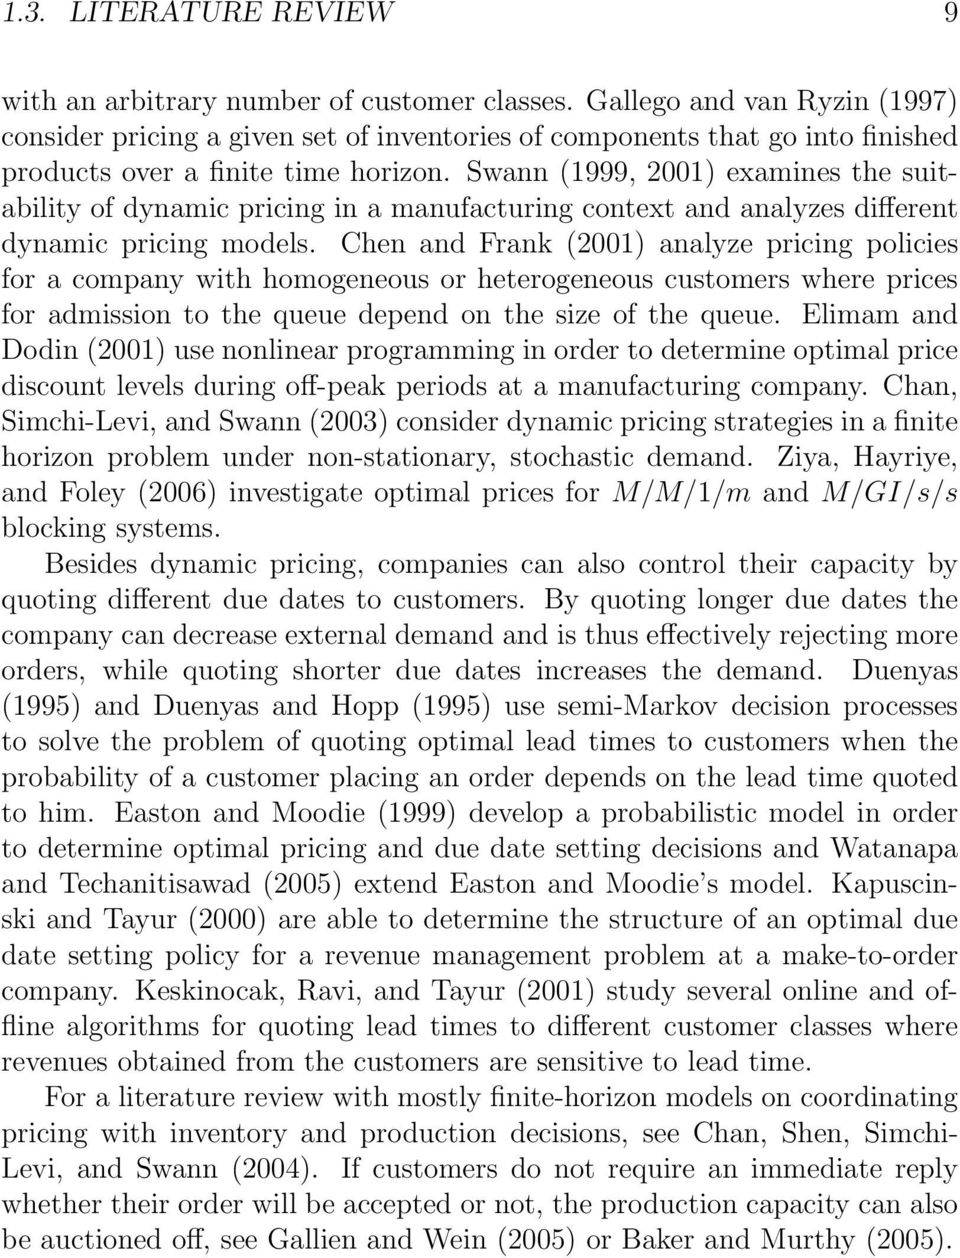 Swann (1999, 2001) examines the suitability of dynamic pricing in a manufacturing context and analyzes different dynamic pricing models.